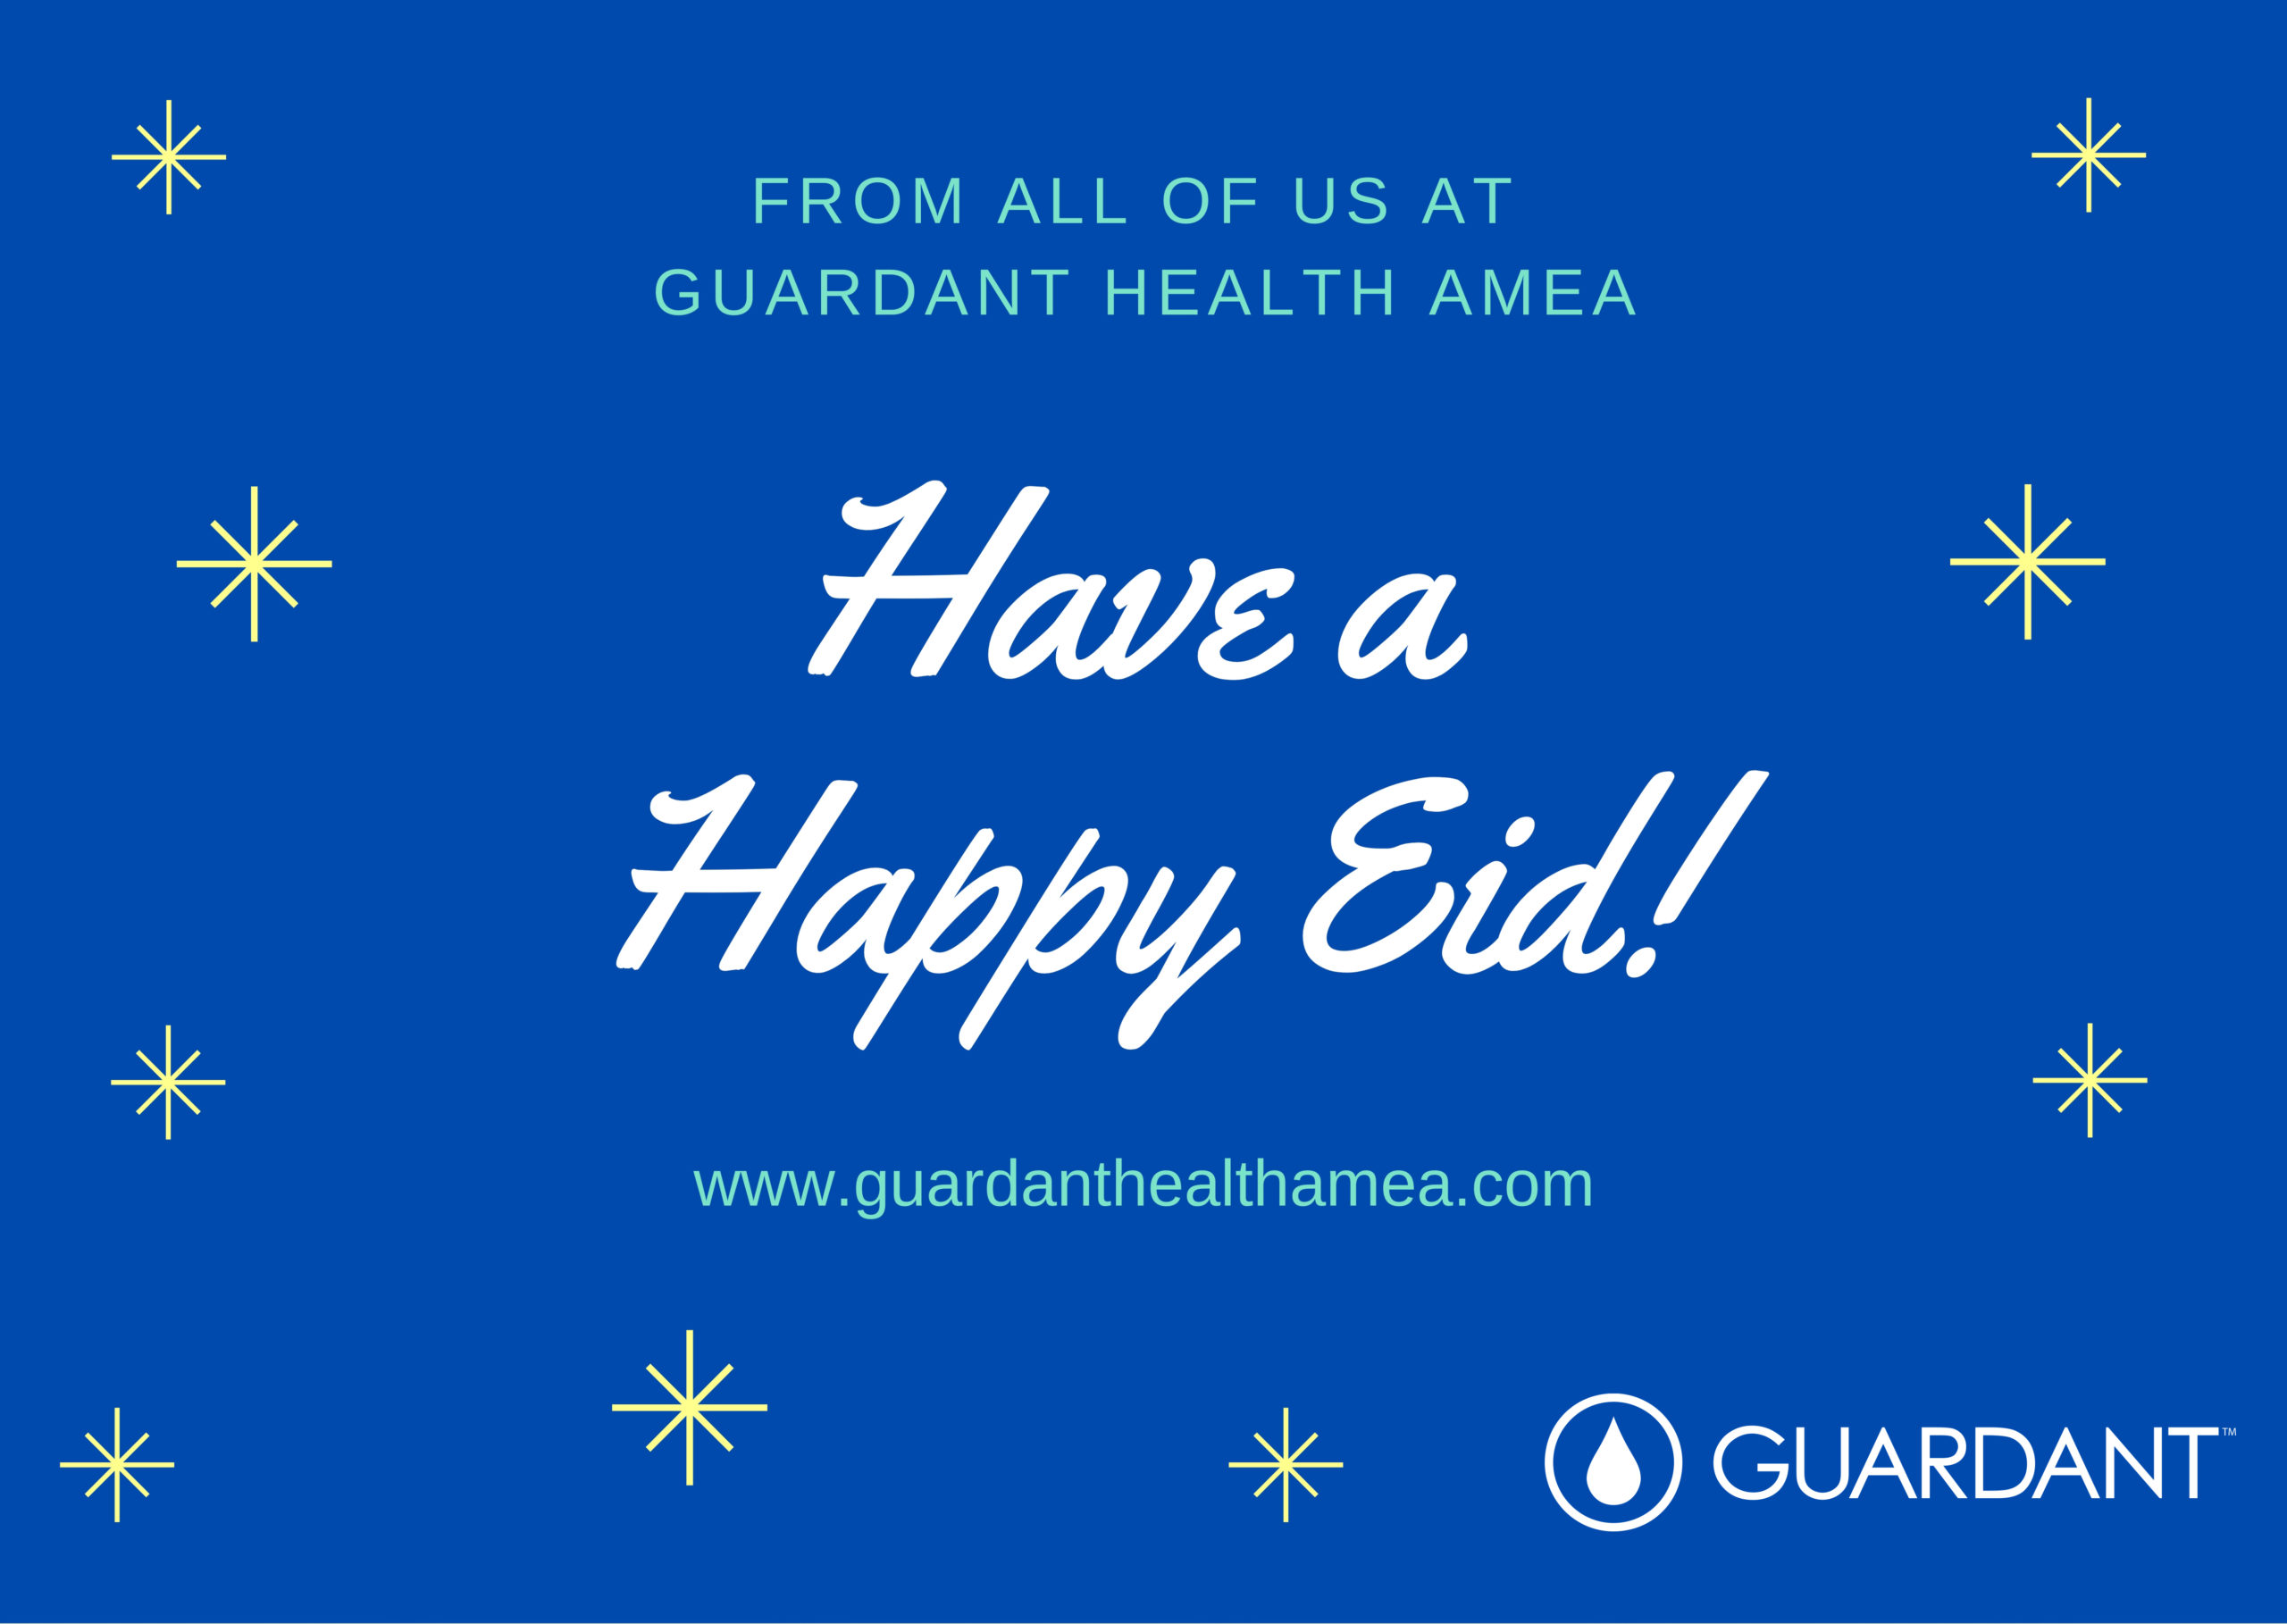 Have A Happy Eid!